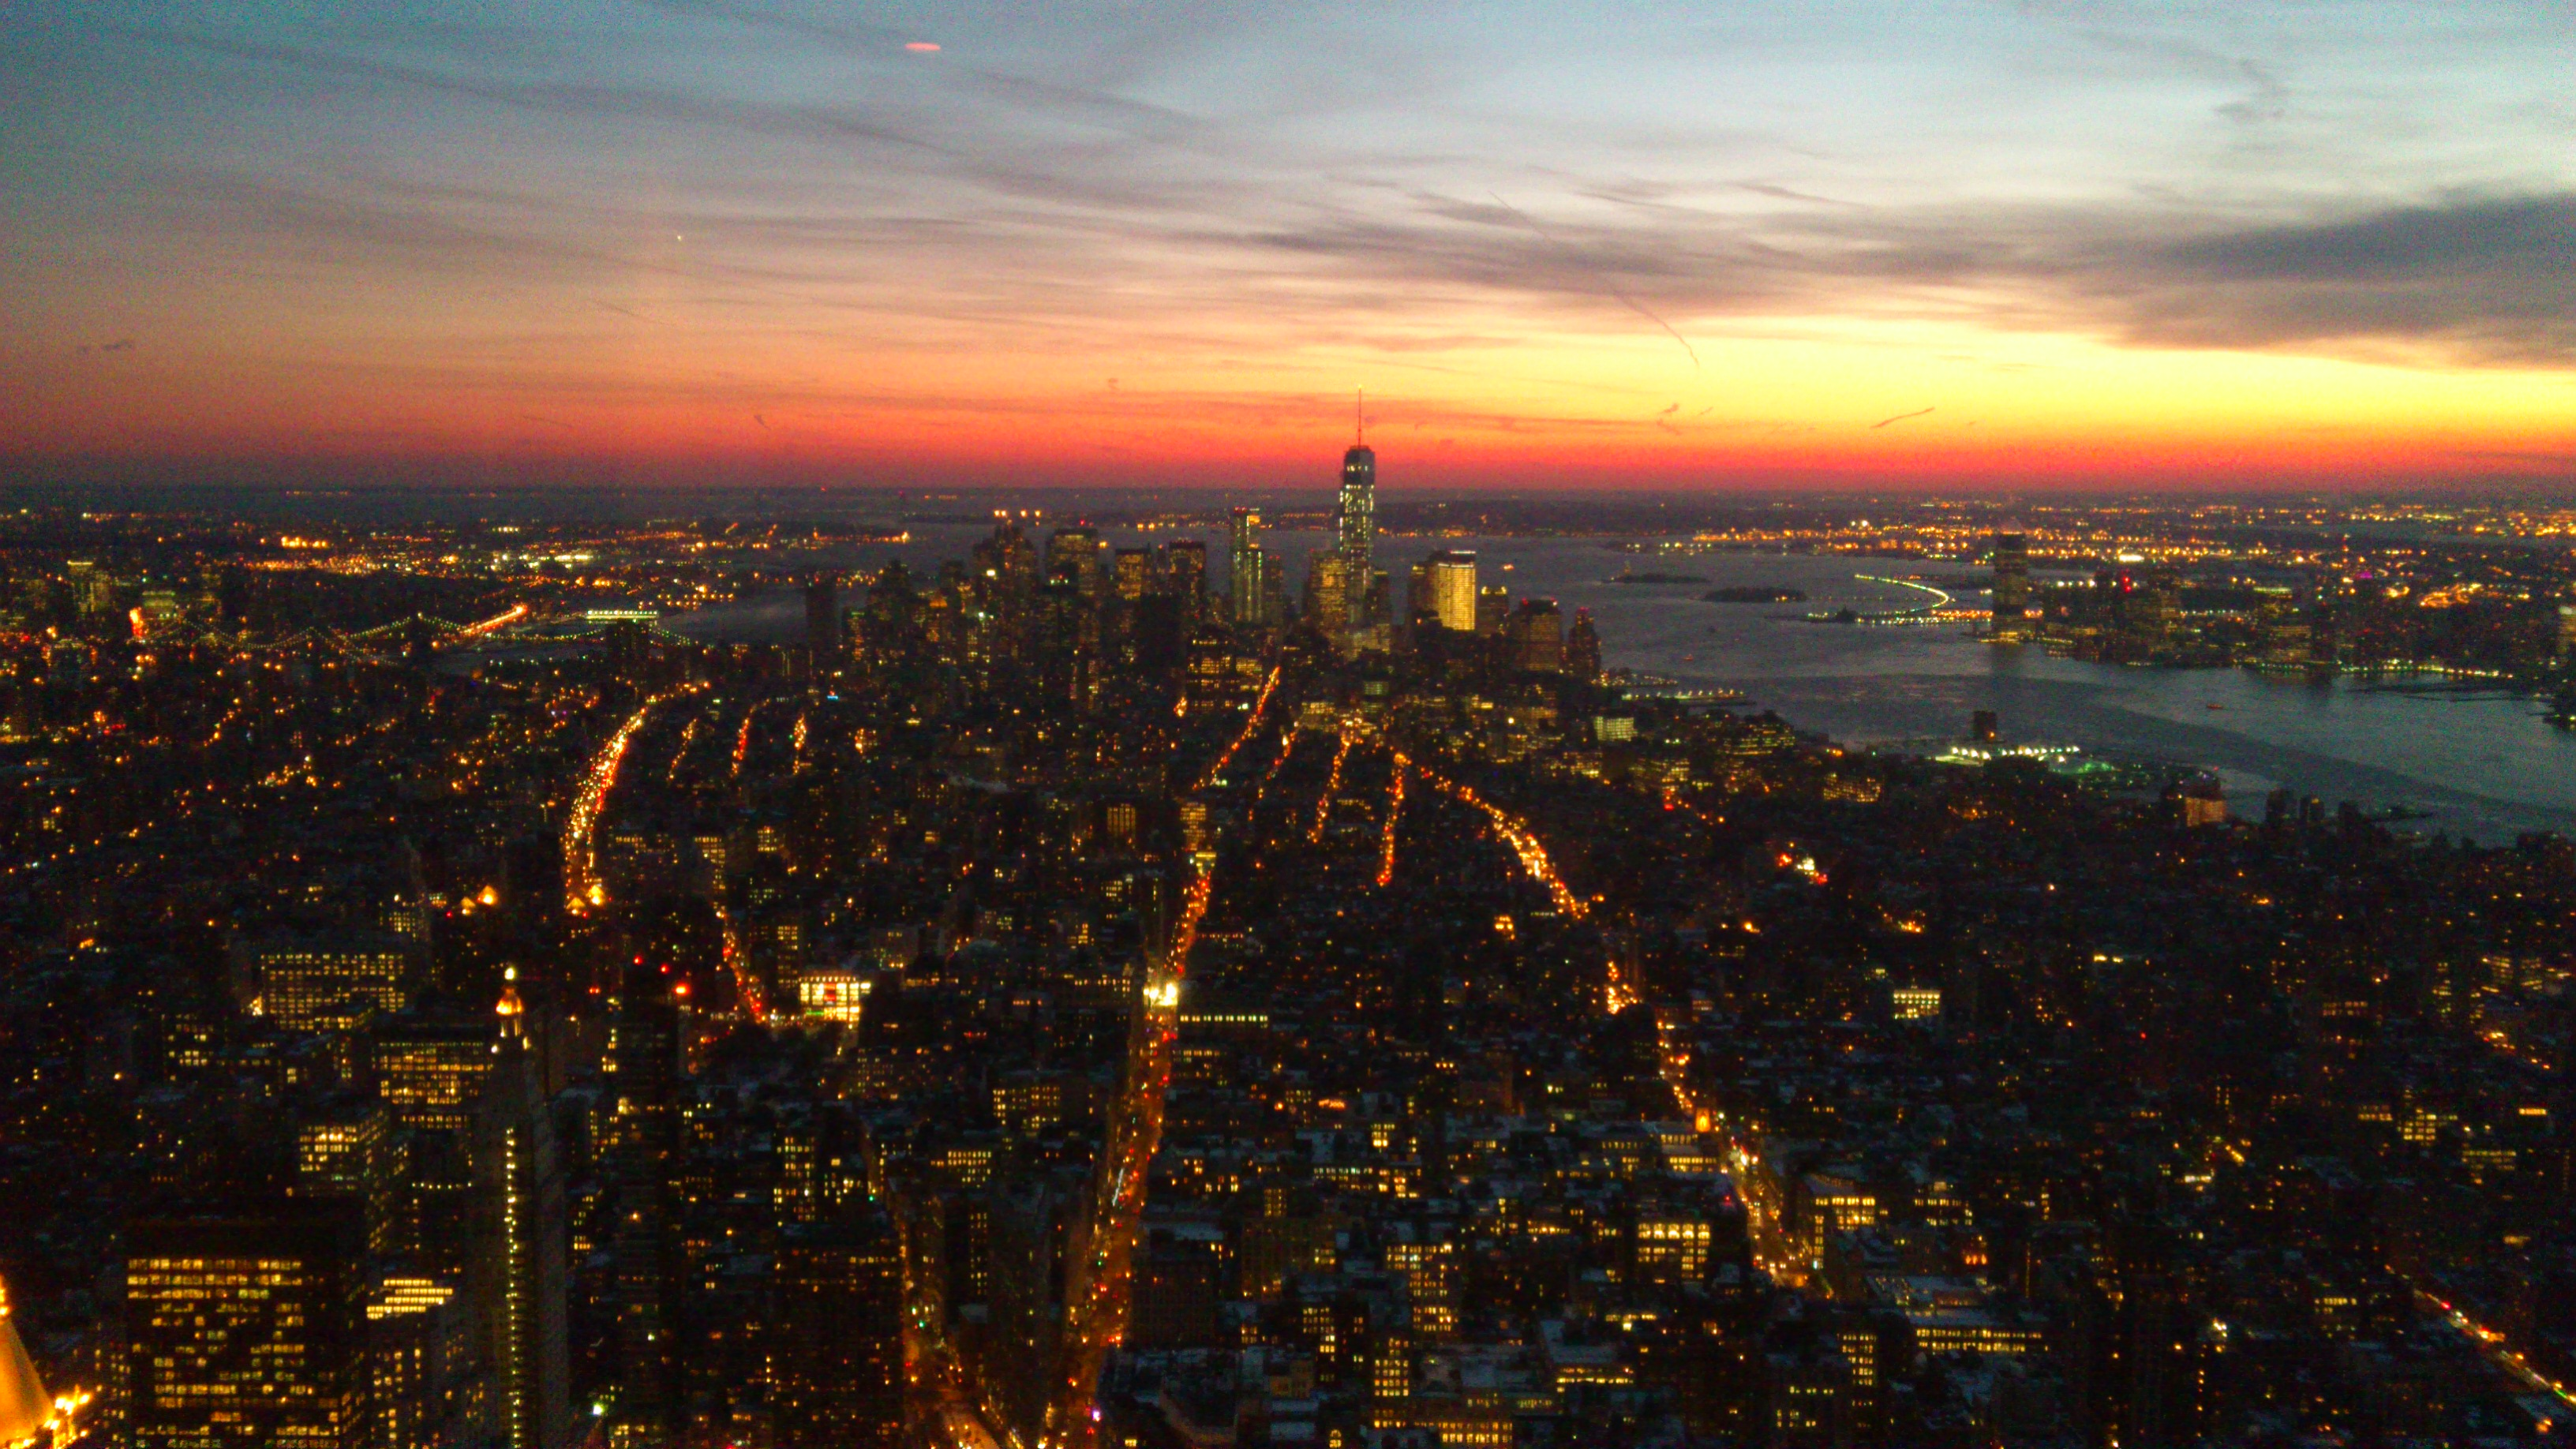 Empire State Building mot söder, Architecture, Ny, Sunset, Stadt, HQ Photo